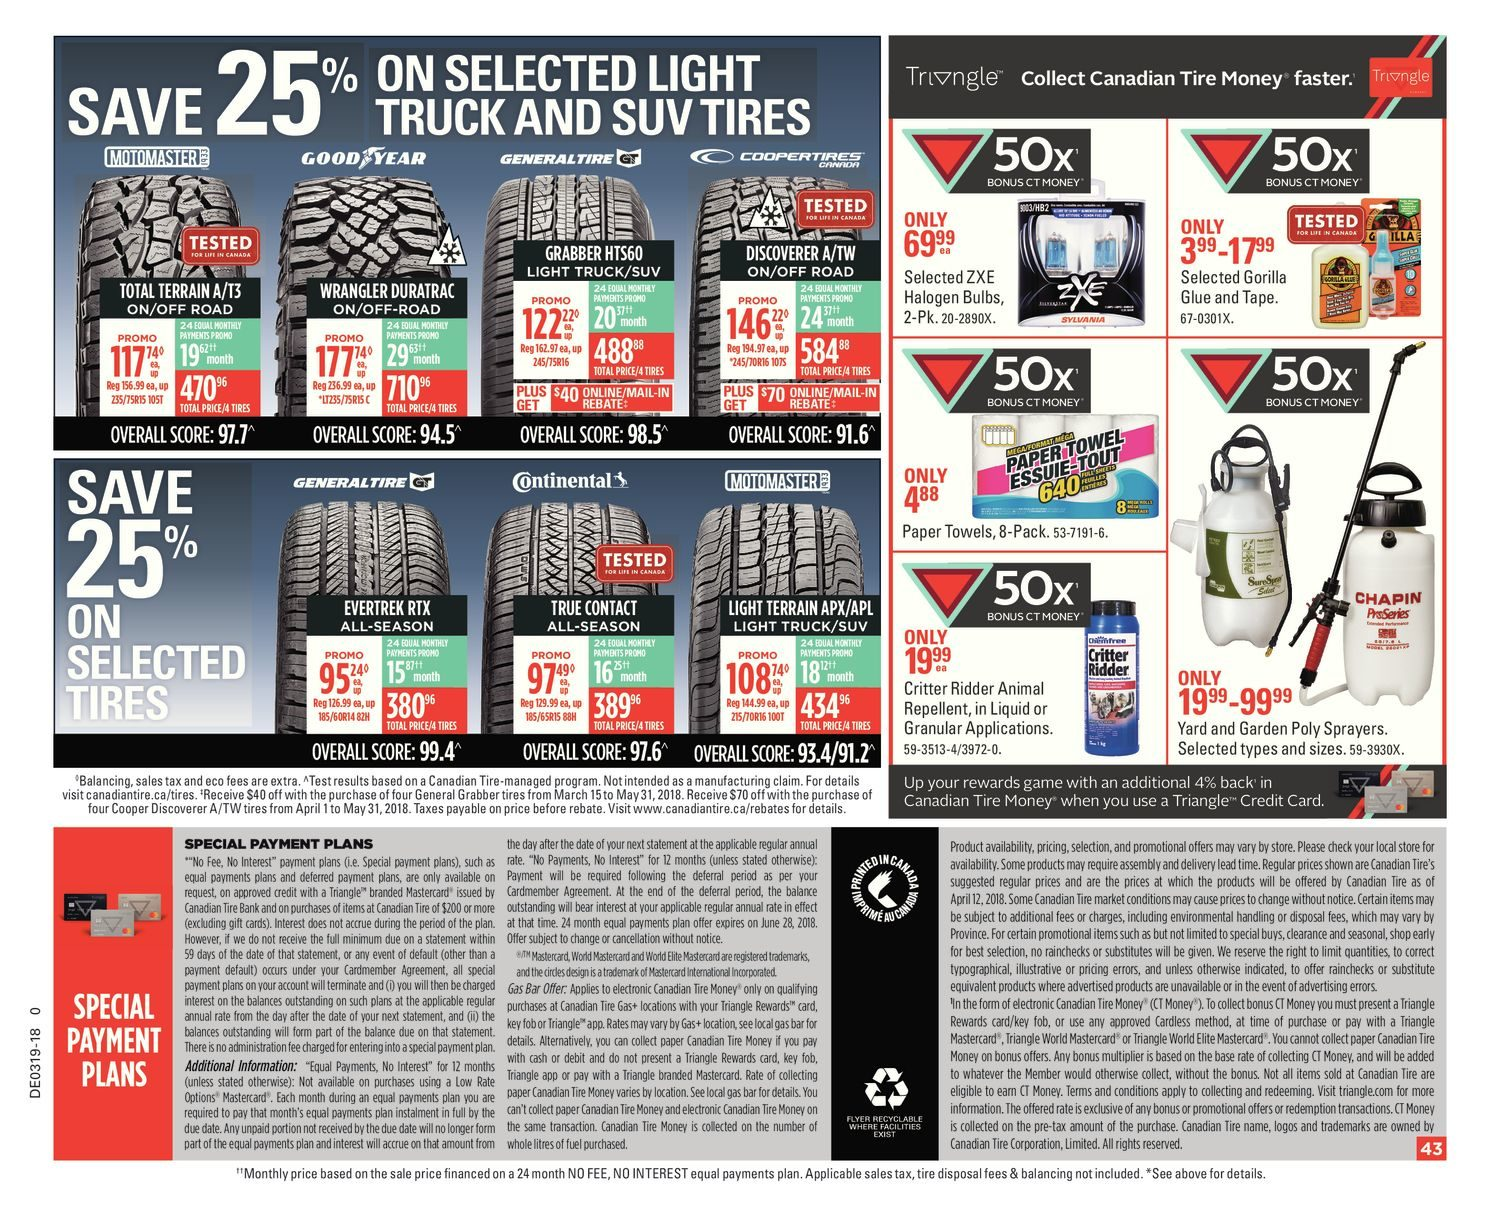 Canadian Tire Weekly Flyer Deals Chef Want Happy Spring Glue 502 Buy Super 502circuit Board Silicone Potting May 4 10